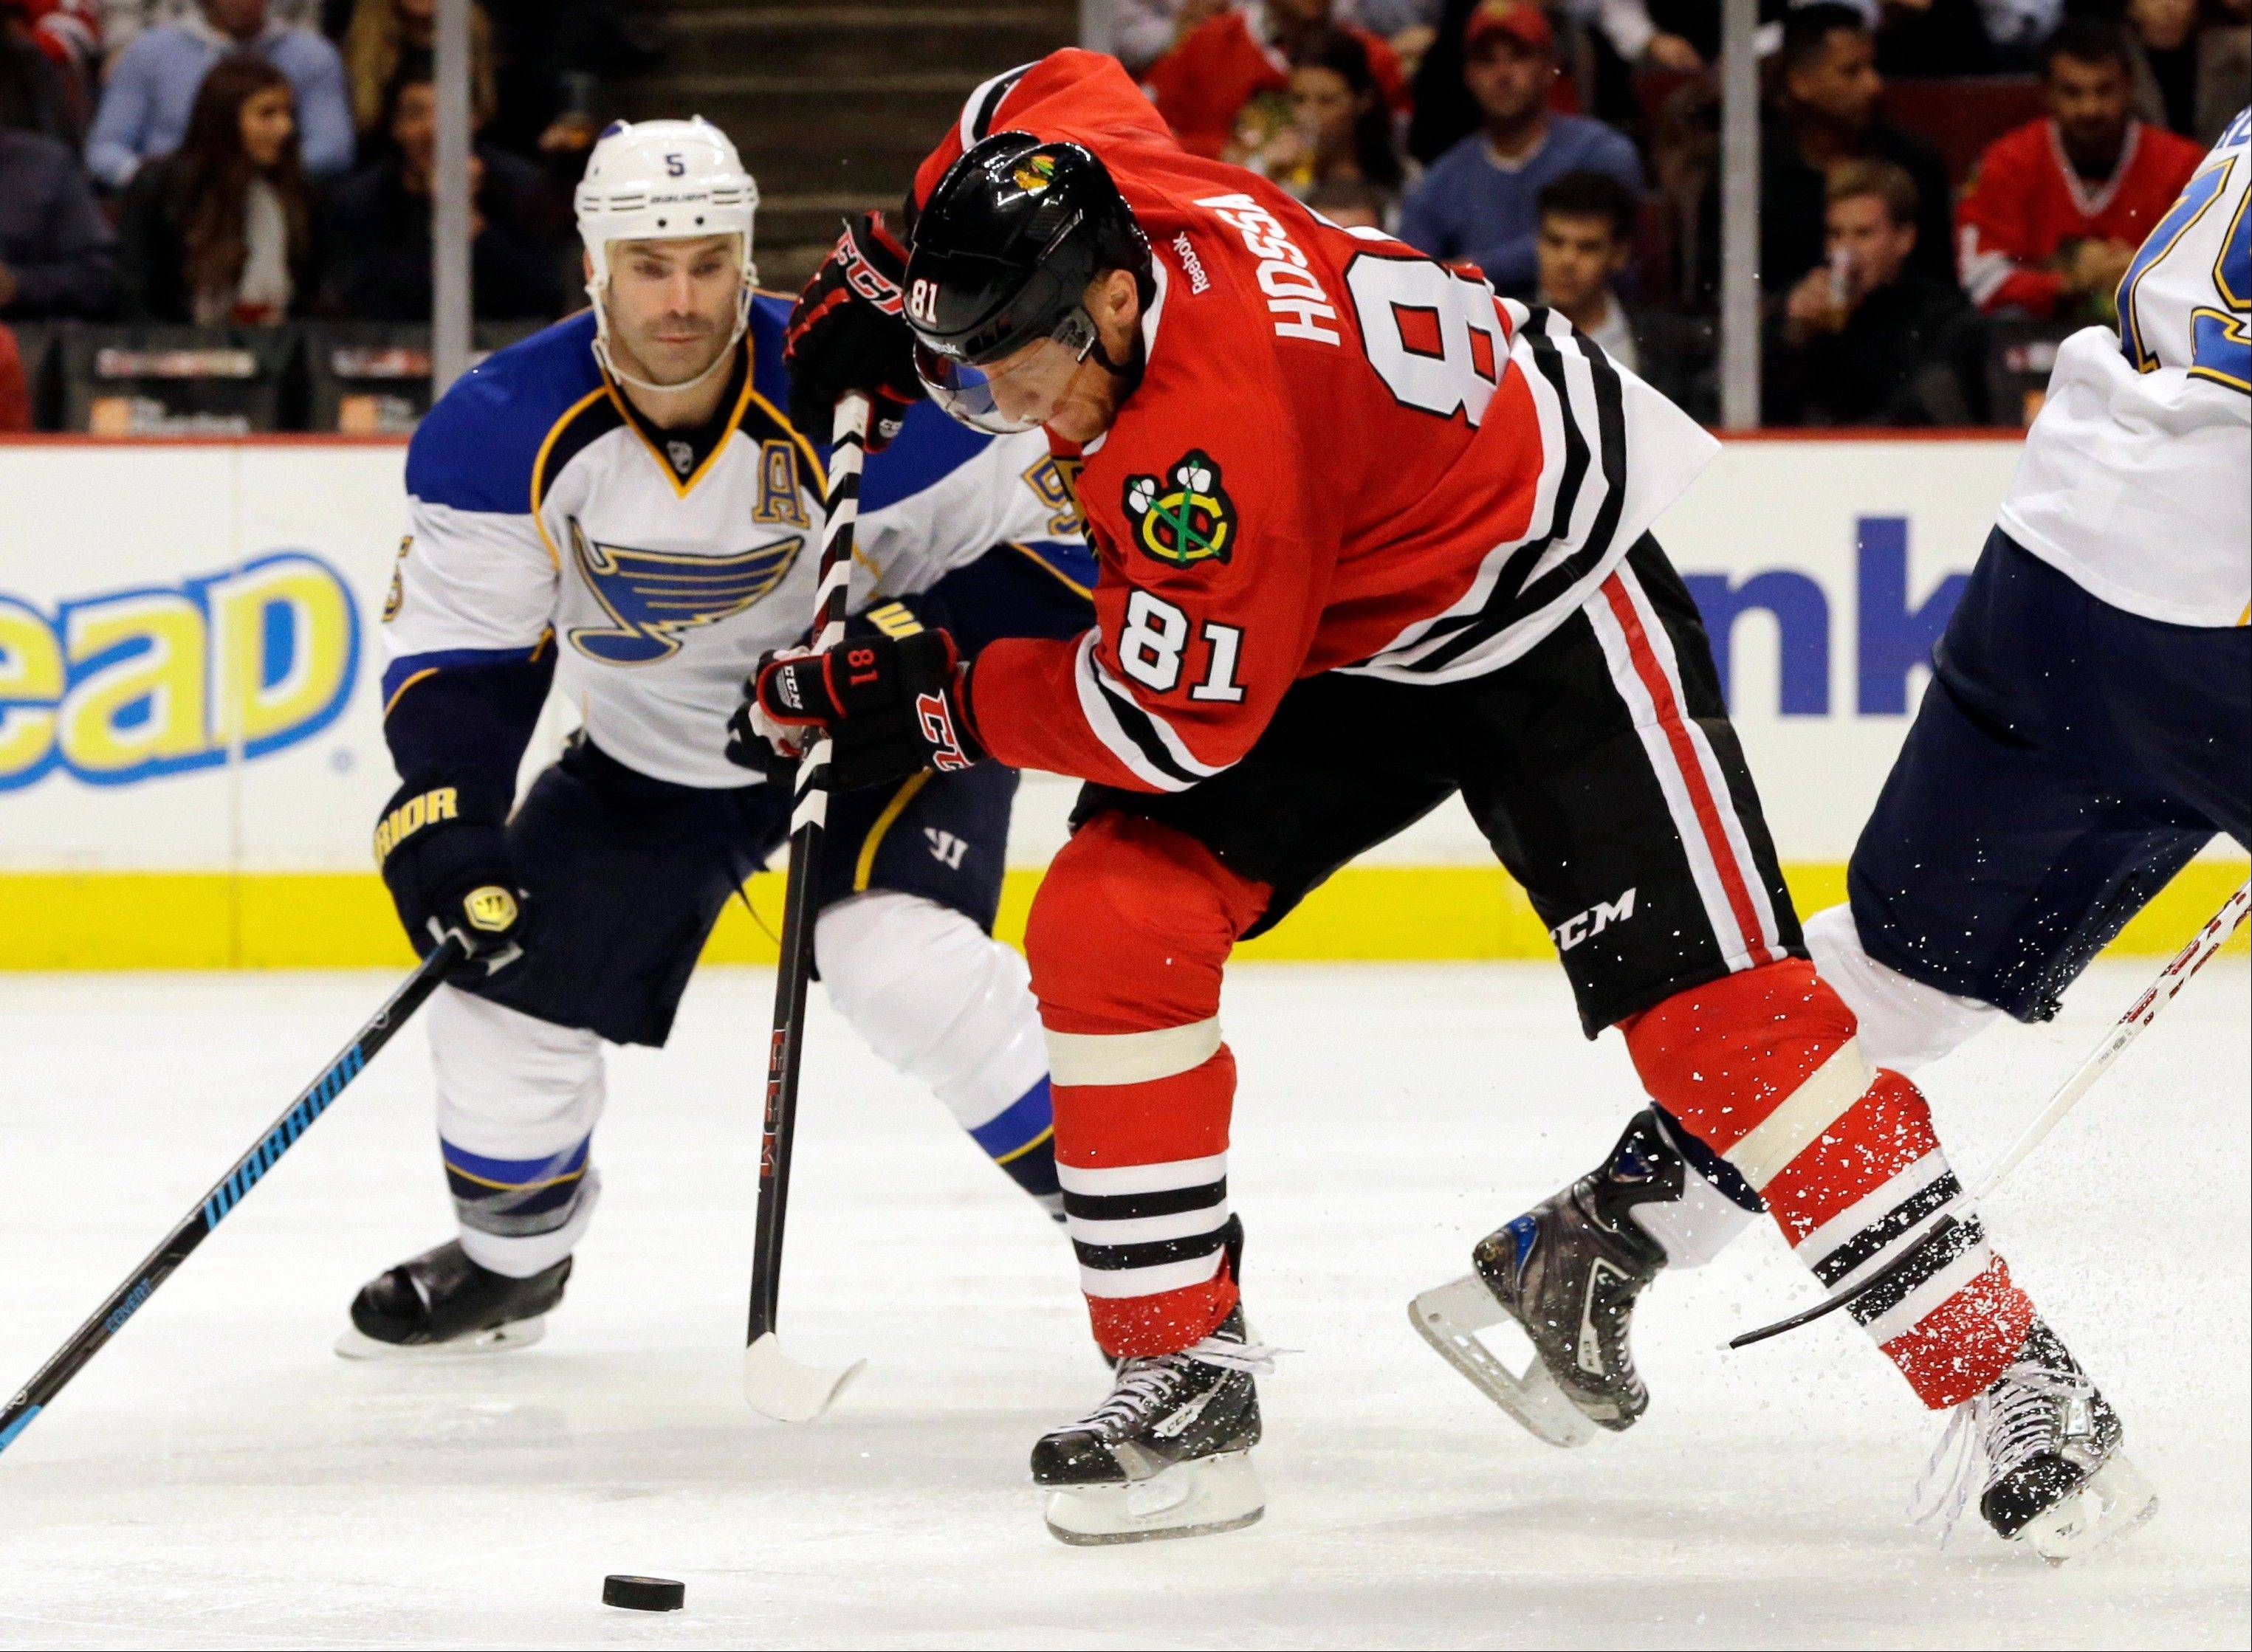 Chicago Blackhawks' Marian Hossa (81) controls the puck during the second period of an NHL hockey game against the St. Louis Blues in Chicago, Thursday, Oct. 17, 2013.